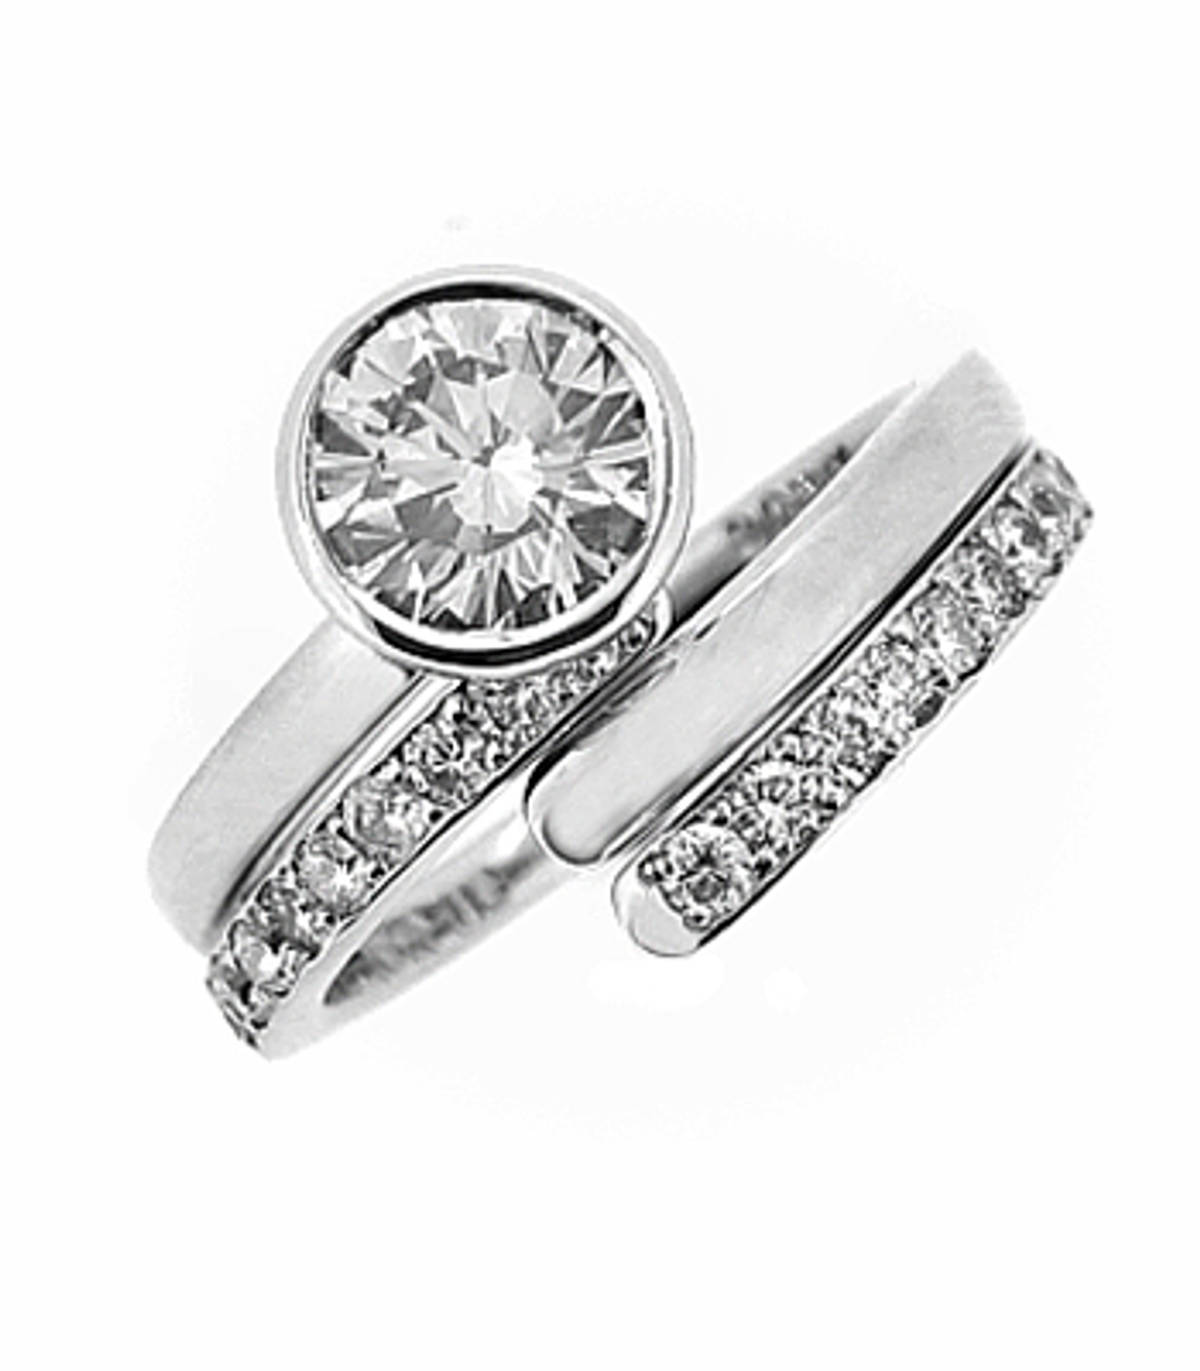 Irish made2 band diamond swirl ring with 0.31 carat brilliant cut centre diamond with 0.14 brilliant cut diamonds in band all in 18 carat white gold